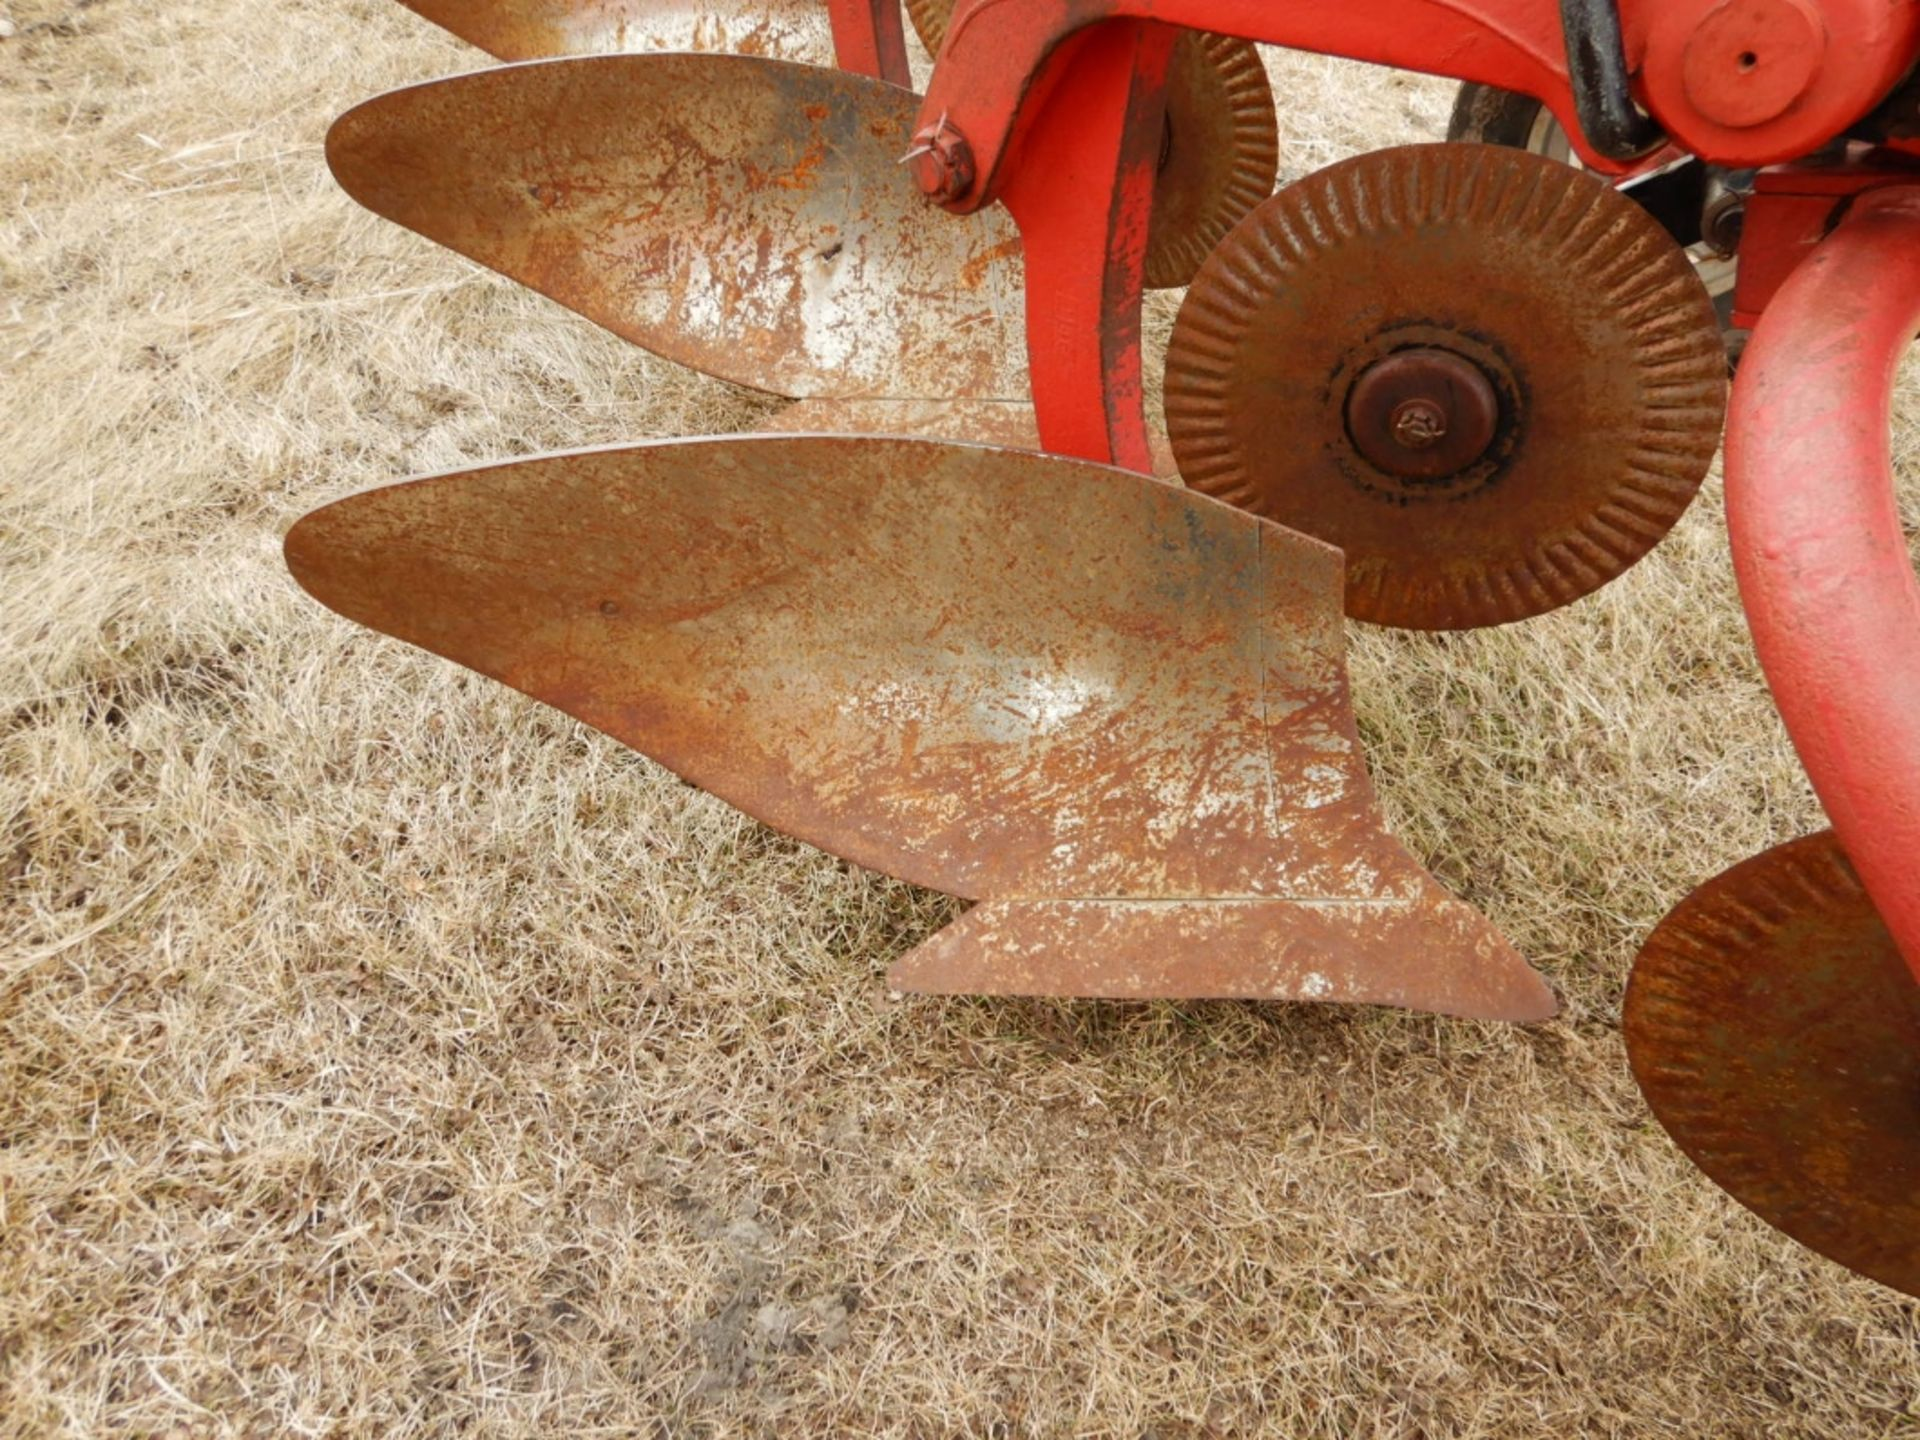 CASE IHC 770 - 5 BTM. PLOW W/COLTERS - Image 4 of 5